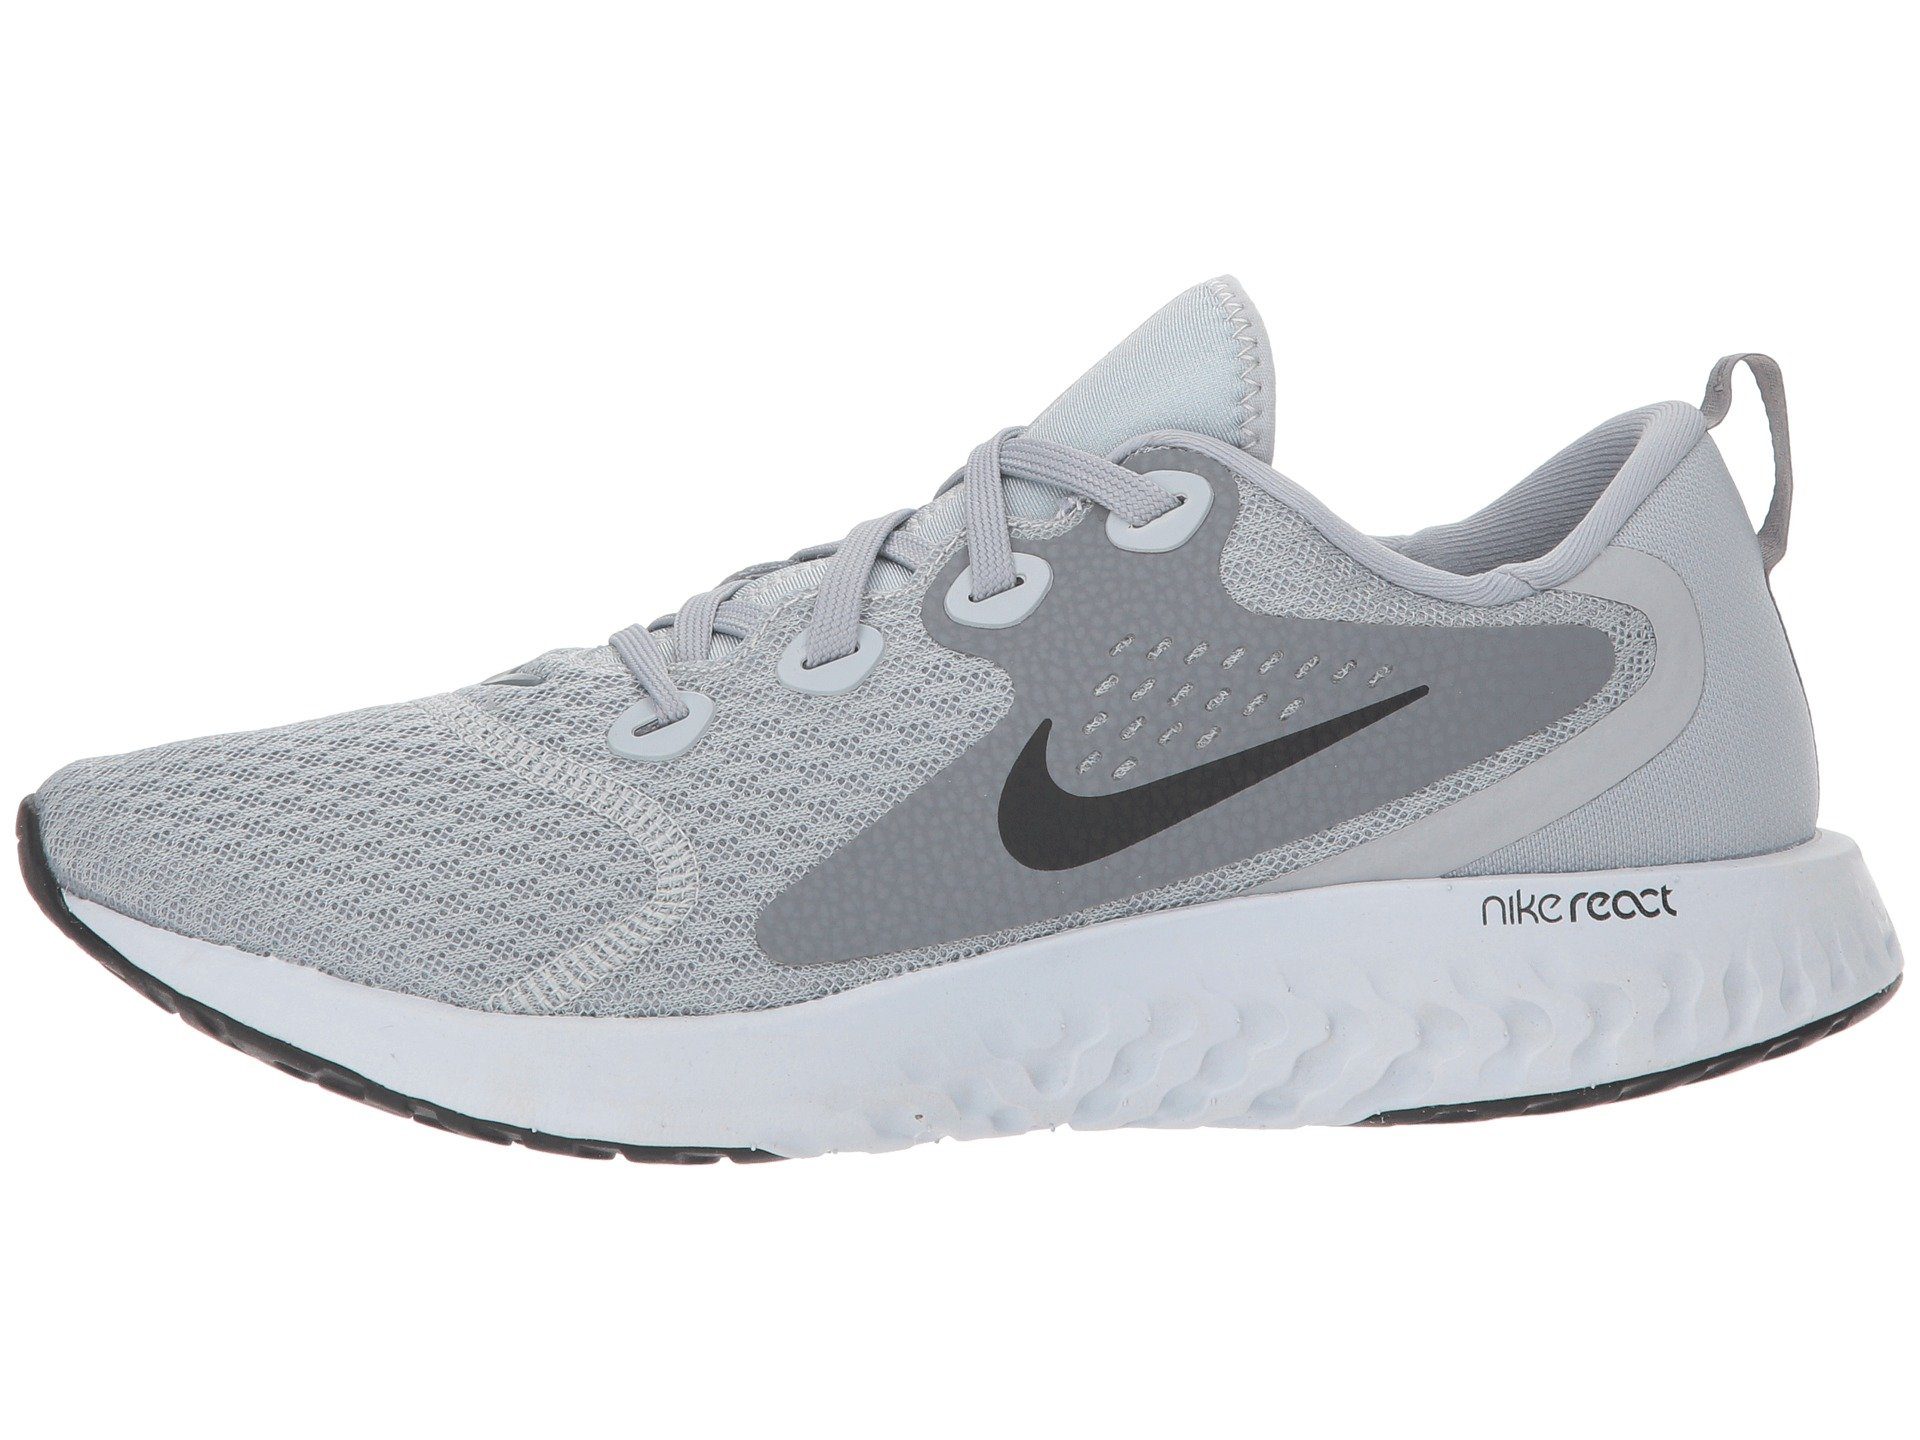 488a2b02d84 Best Nike Running Shoes